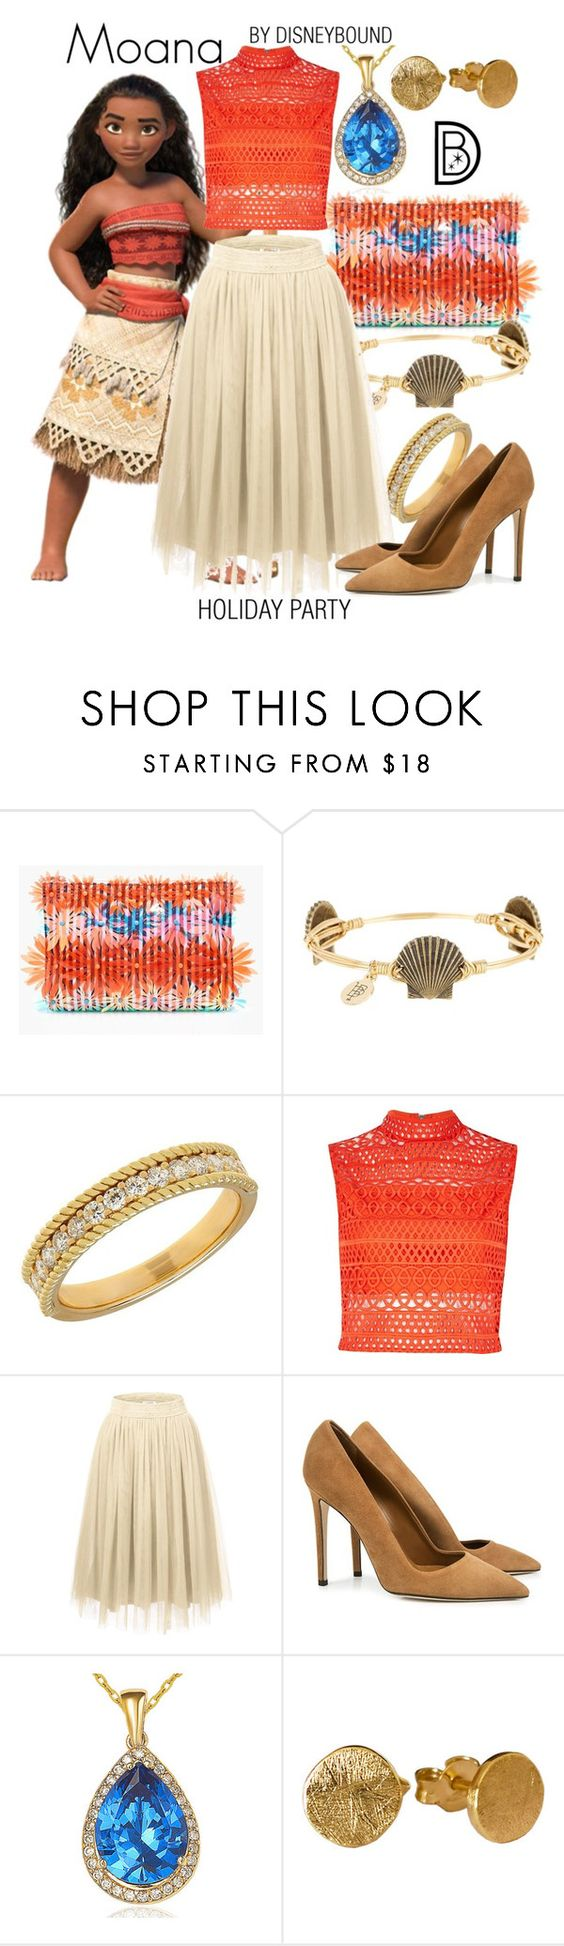 """Moana"" by leslieakay ❤ liked on Polyvore featuring J.Crew, Bourbon and Boweties, Lord & Taylor, River Island, Dee Keller, Suzy Levian, disney, disneybound, disneycharacter and holidaystyle"